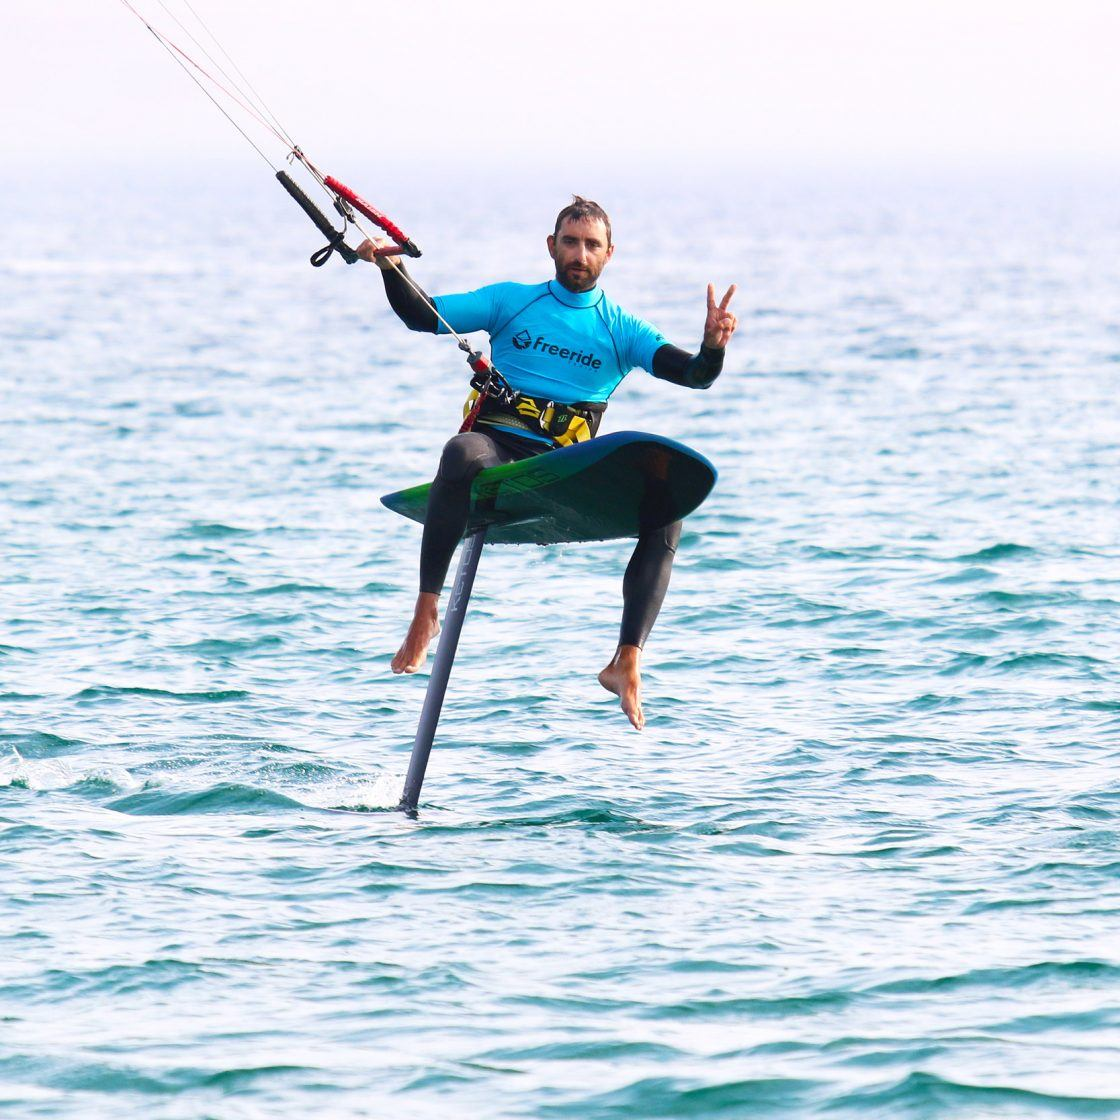 learn how to kitefoil Tarifa, rental foil spain, training foil, kitefoil courses